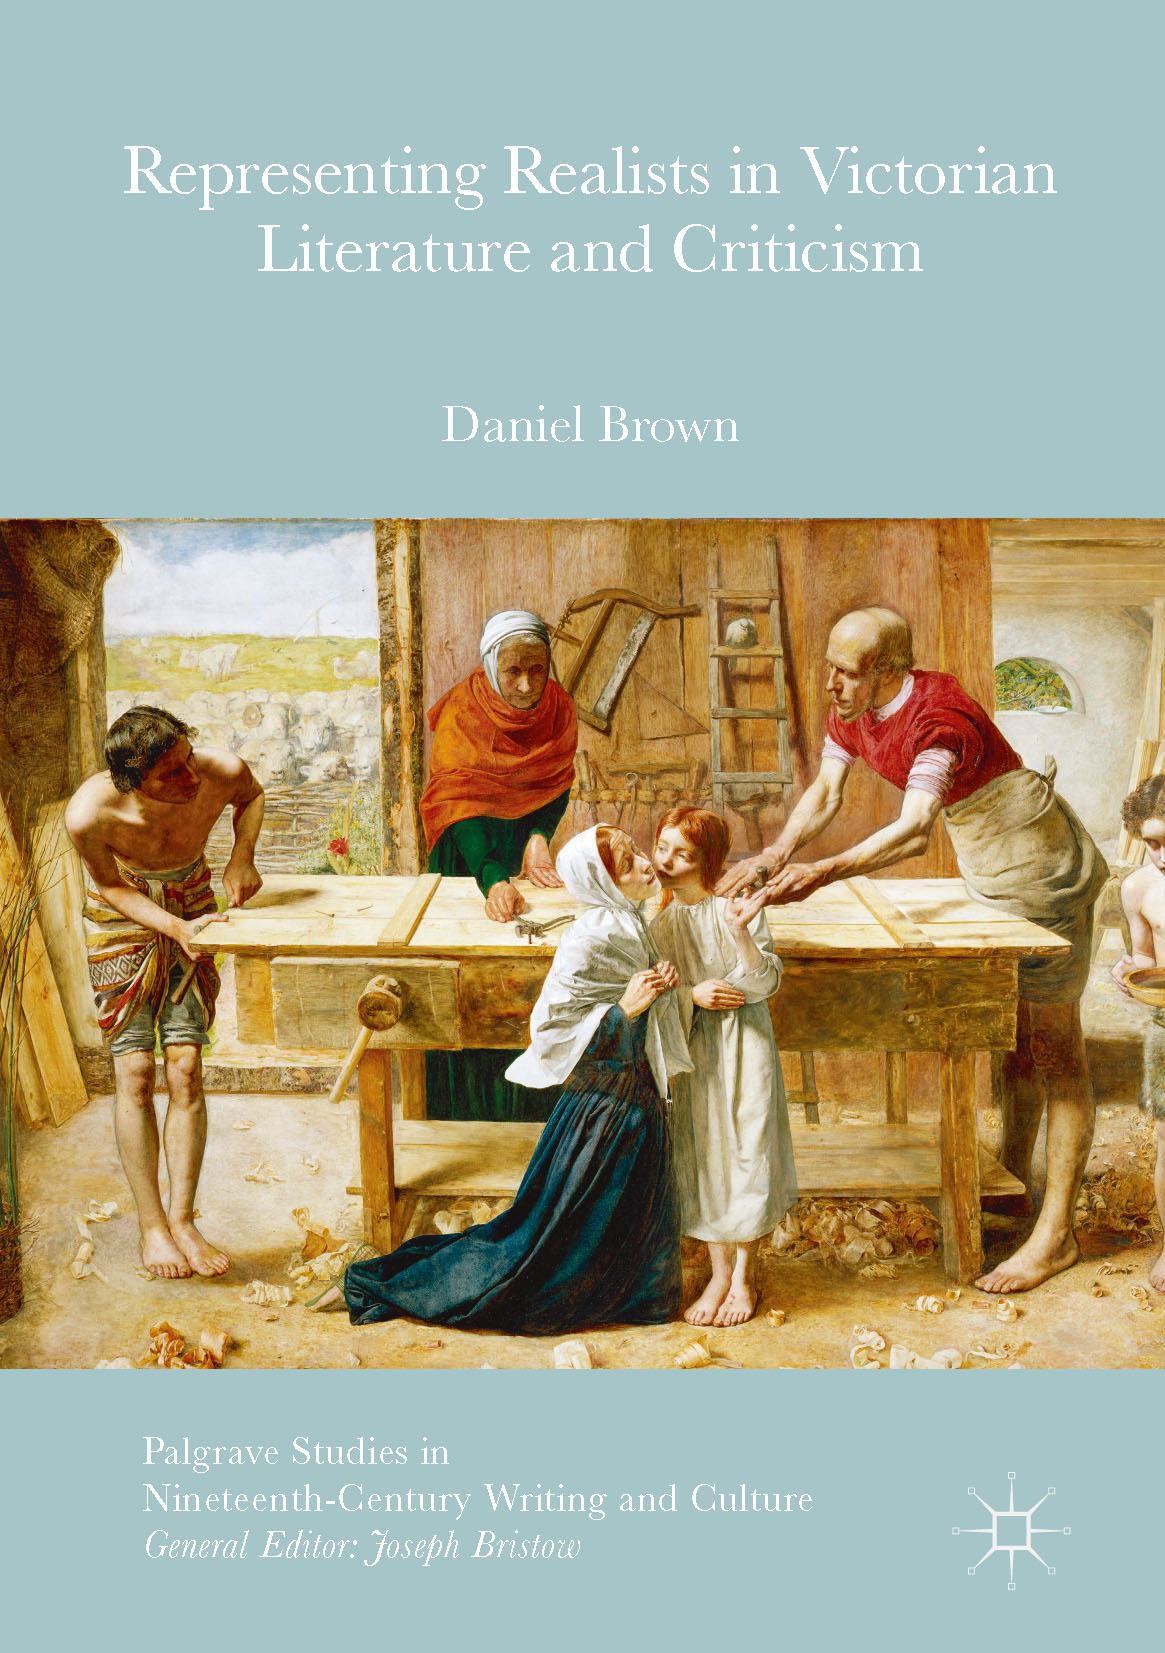 Brown, Daniel - Representing Realists in Victorian Literature and Criticism, ebook